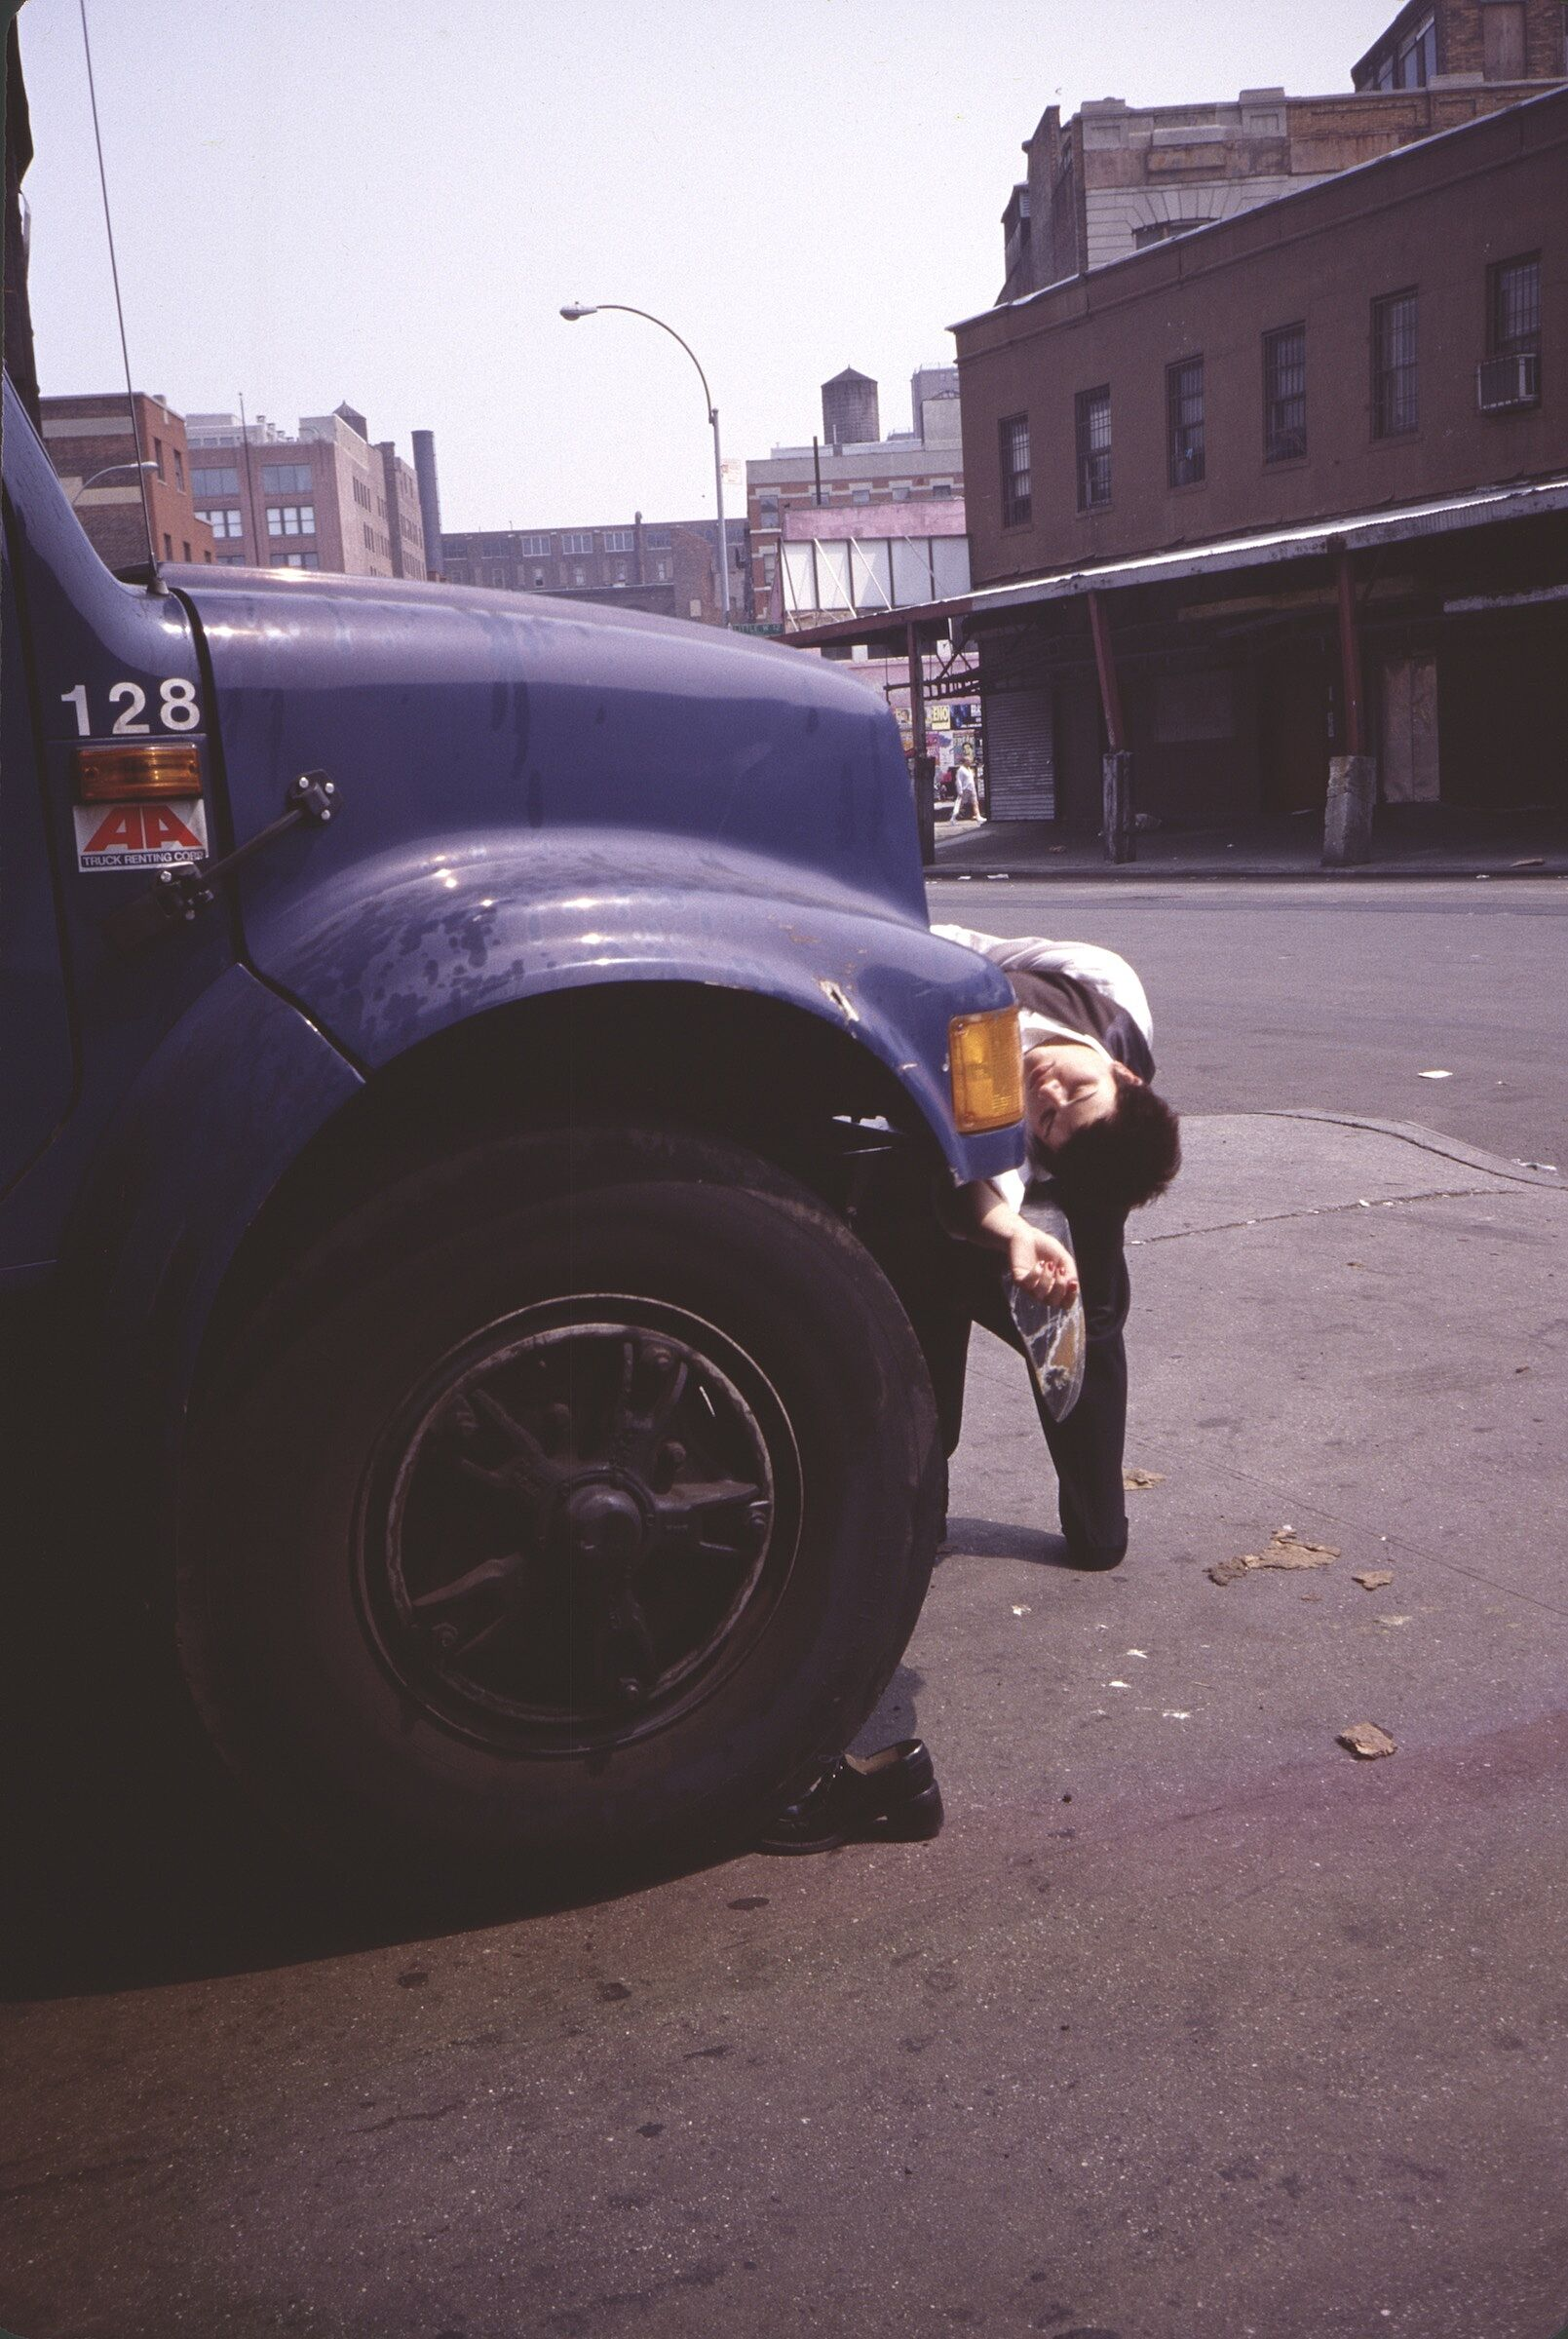 A film still of a person bending backward behind a blue truck.